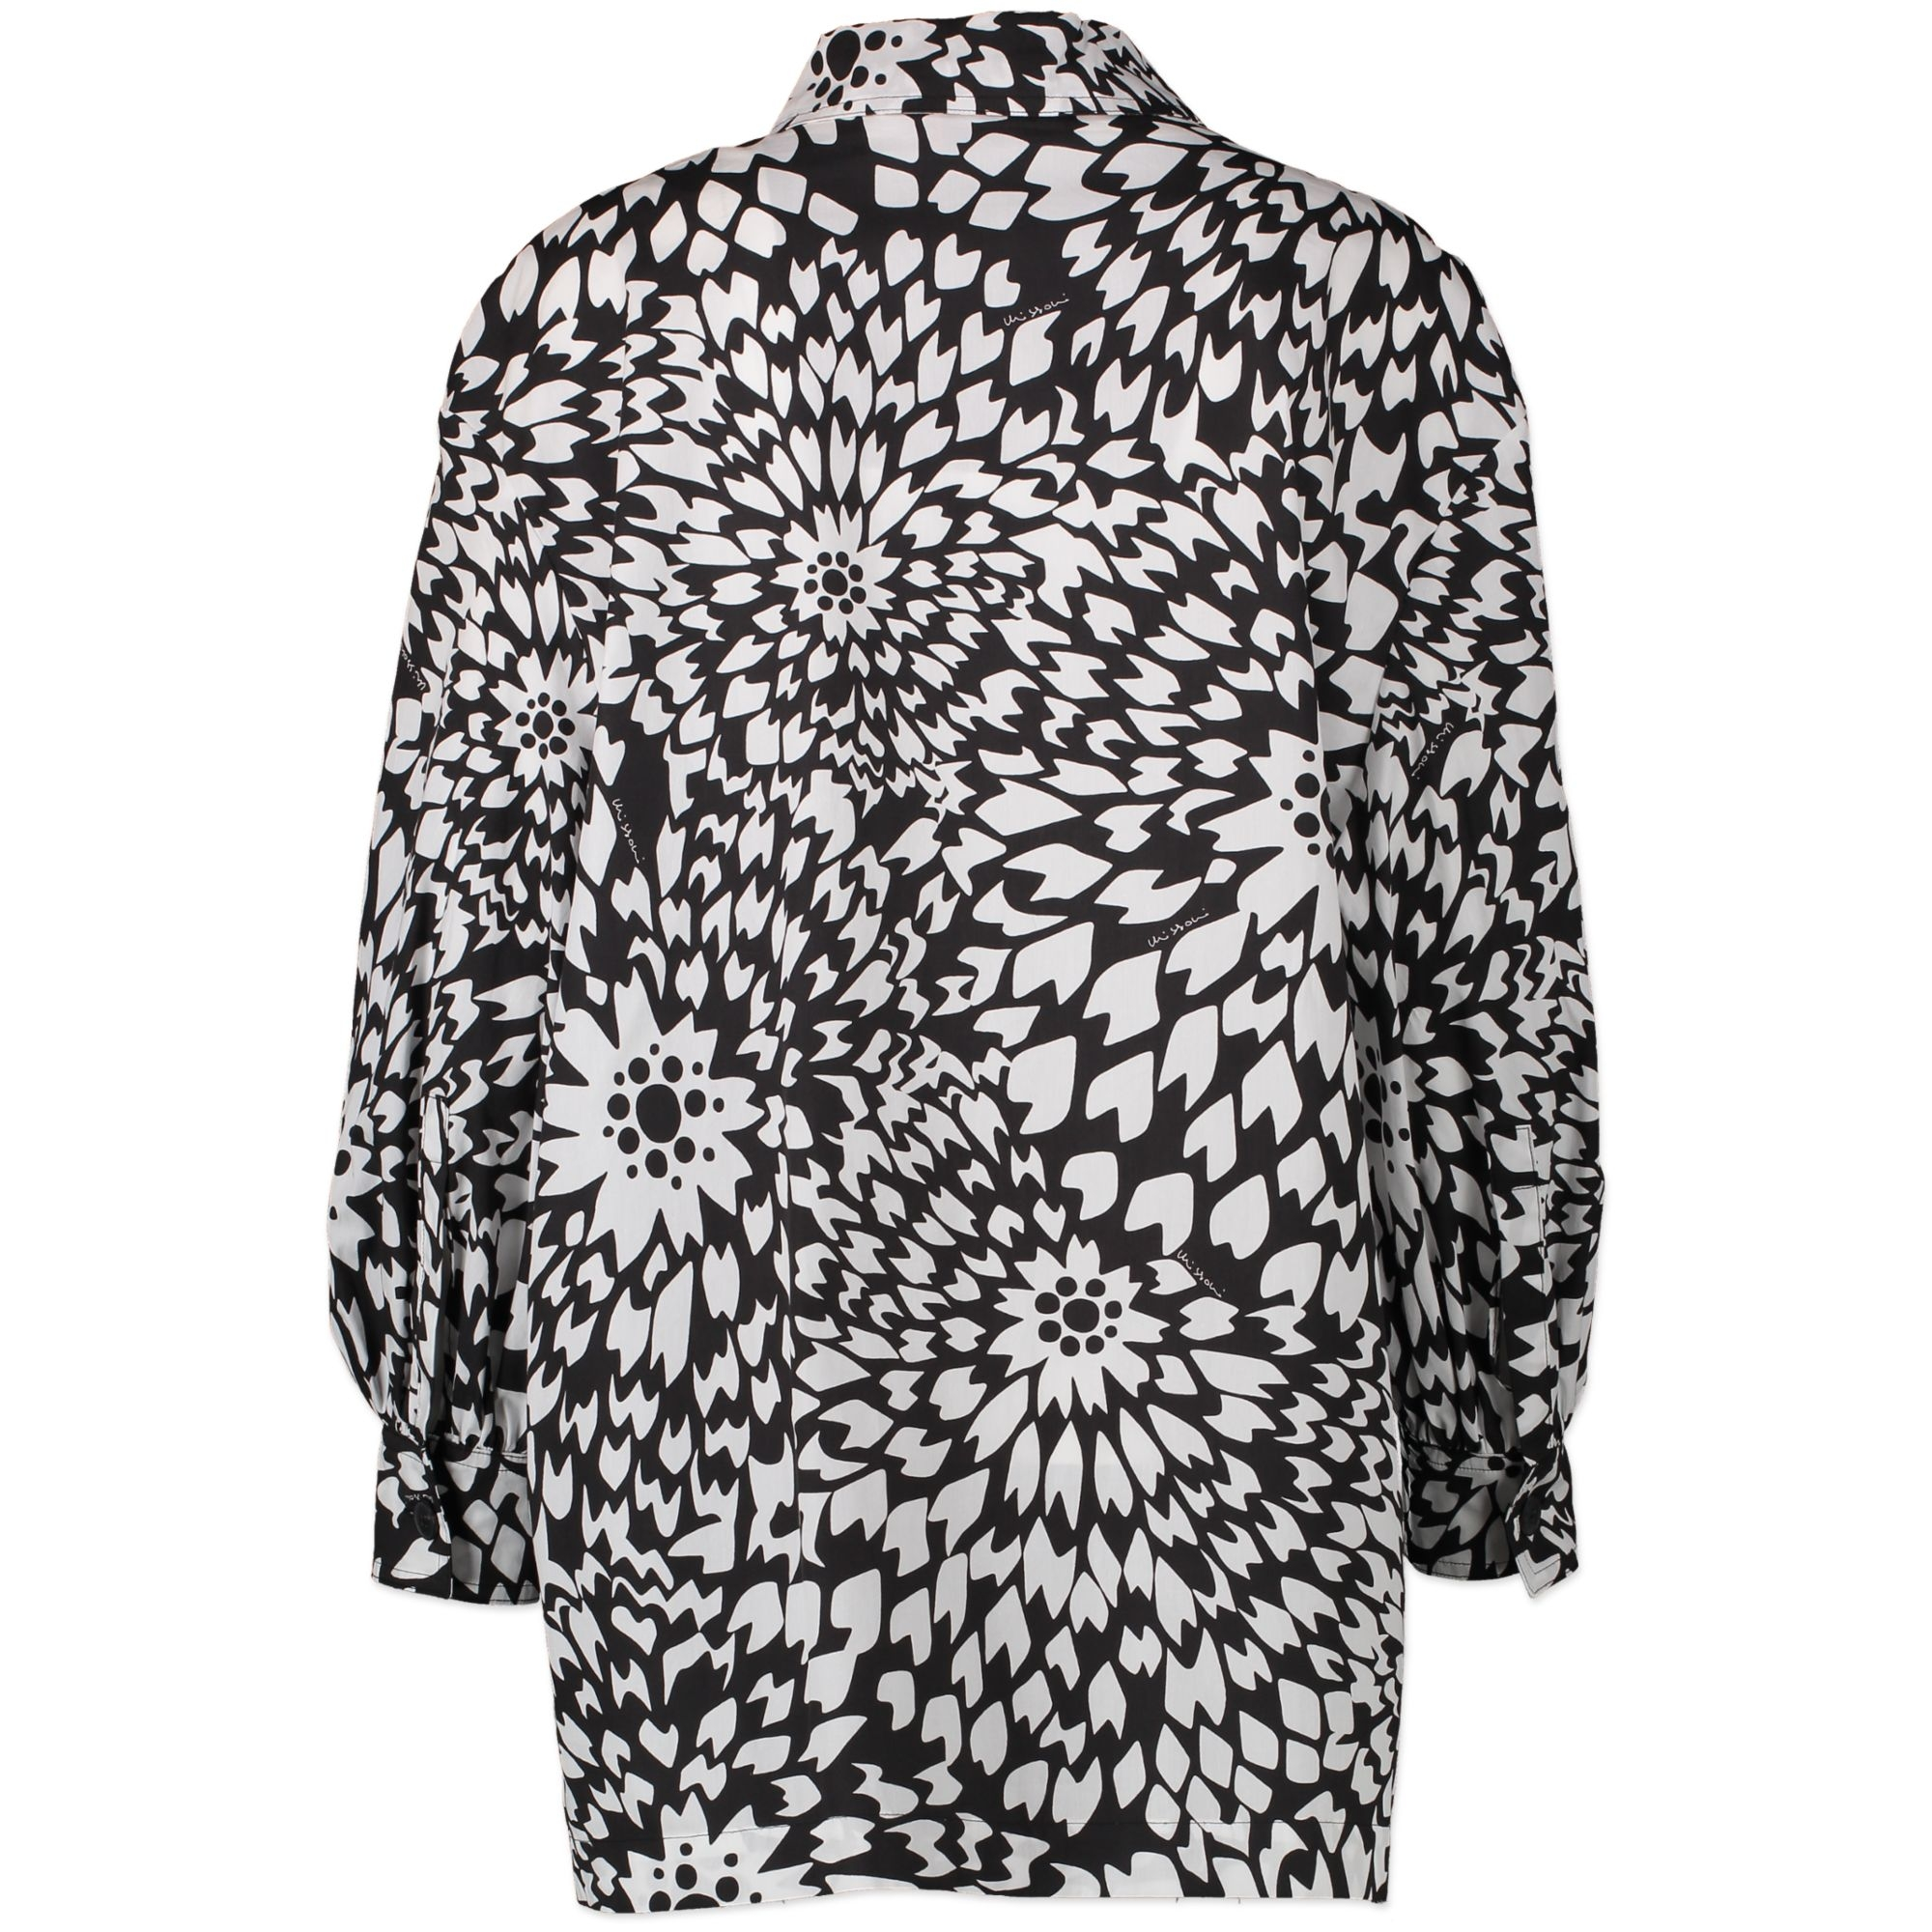 Missoni Black and White Pattern Blouse - Size IT 44